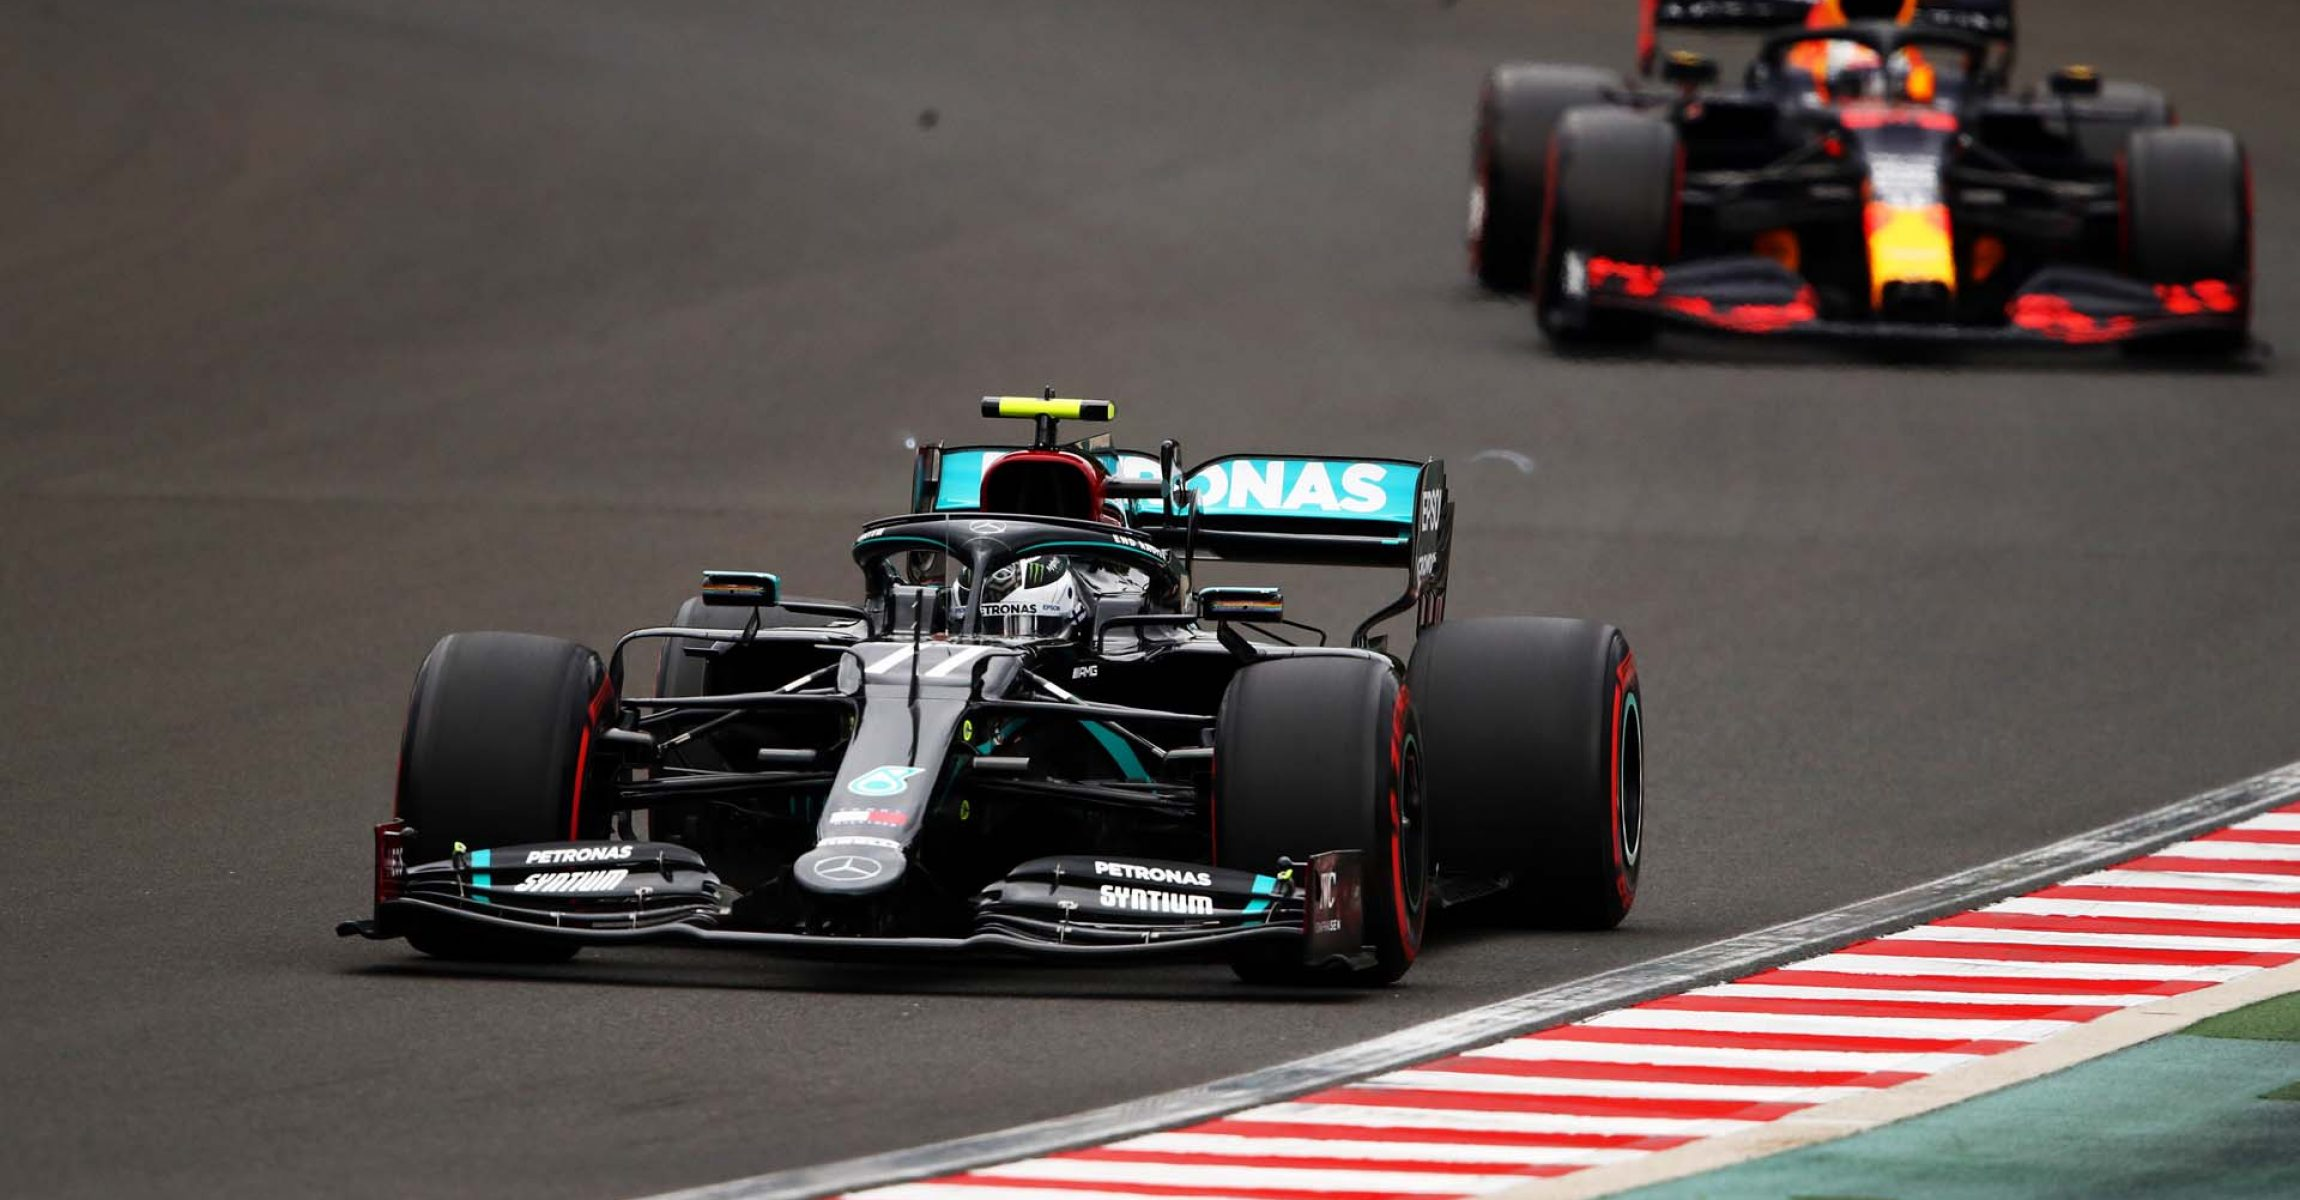 BUDAPEST, HUNGARY - JULY 18: Valtteri Bottas of Finland driving the (77) Mercedes AMG Petronas F1 Team Mercedes W11 leads Max Verstappen of the Netherlands driving the (33) Aston Martin Red Bull Racing RB16 on track during qualifying for the F1 Grand Prix of Hungary at Hungaroring on July 18, 2020 in Budapest, Hungary. (Photo by Bryn Lennon/Getty Images) // Getty Images / Red Bull Content Pool  // AP-24NVE9JVD1W11 // Usage for editorial use only //